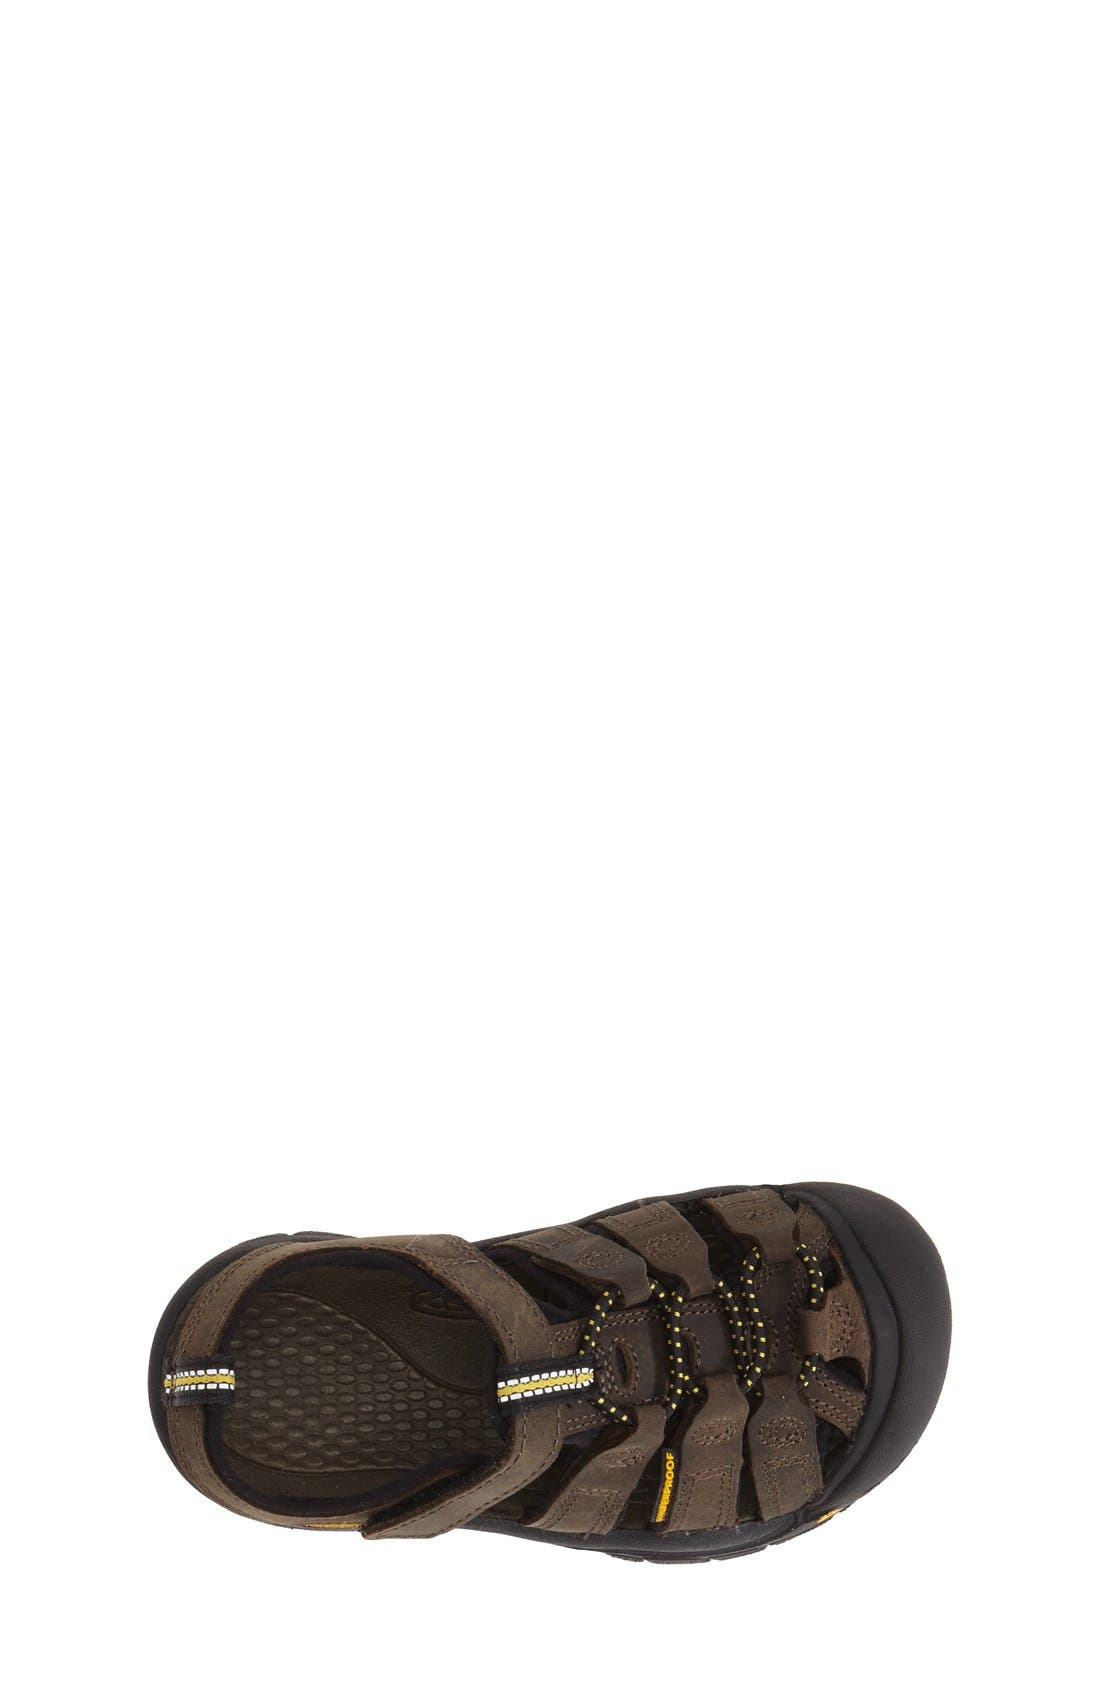 'Newport Premium' Water Friendly Sport Sandal,                             Alternate thumbnail 4, color,                             202